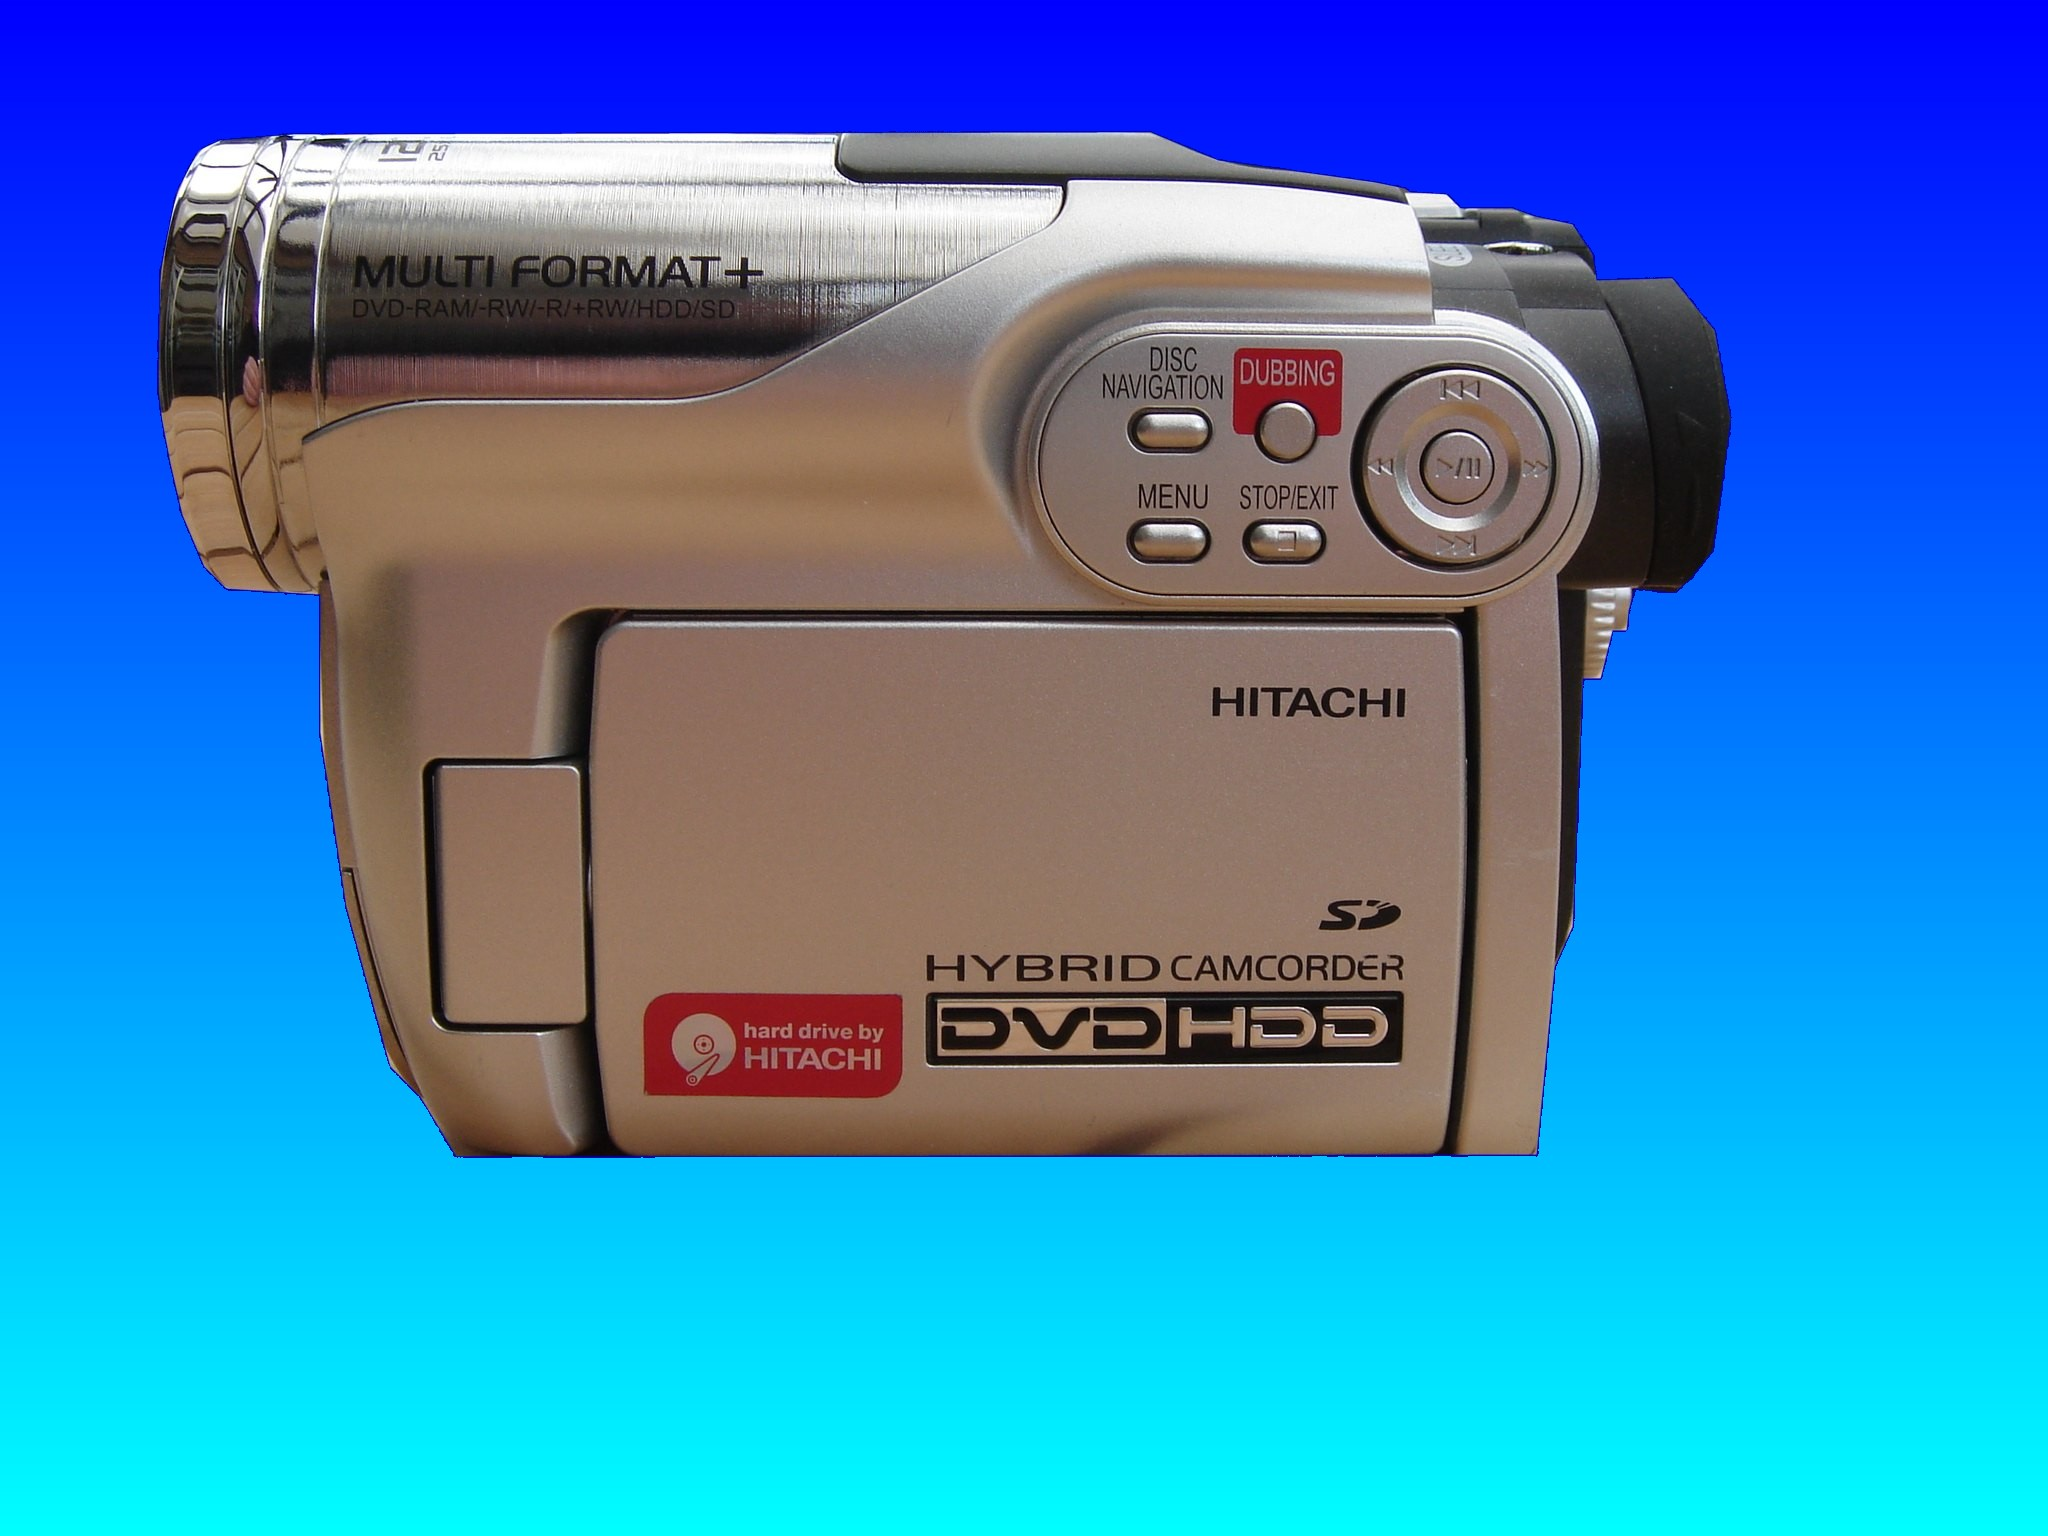 An Hitachi DZ-HS500E DVD HDD hybrid camcorder. This disk uses DVD-RAM disks and an internal hard drive storage for the video data. This one was sent for Video Recovery after accidental deletion.